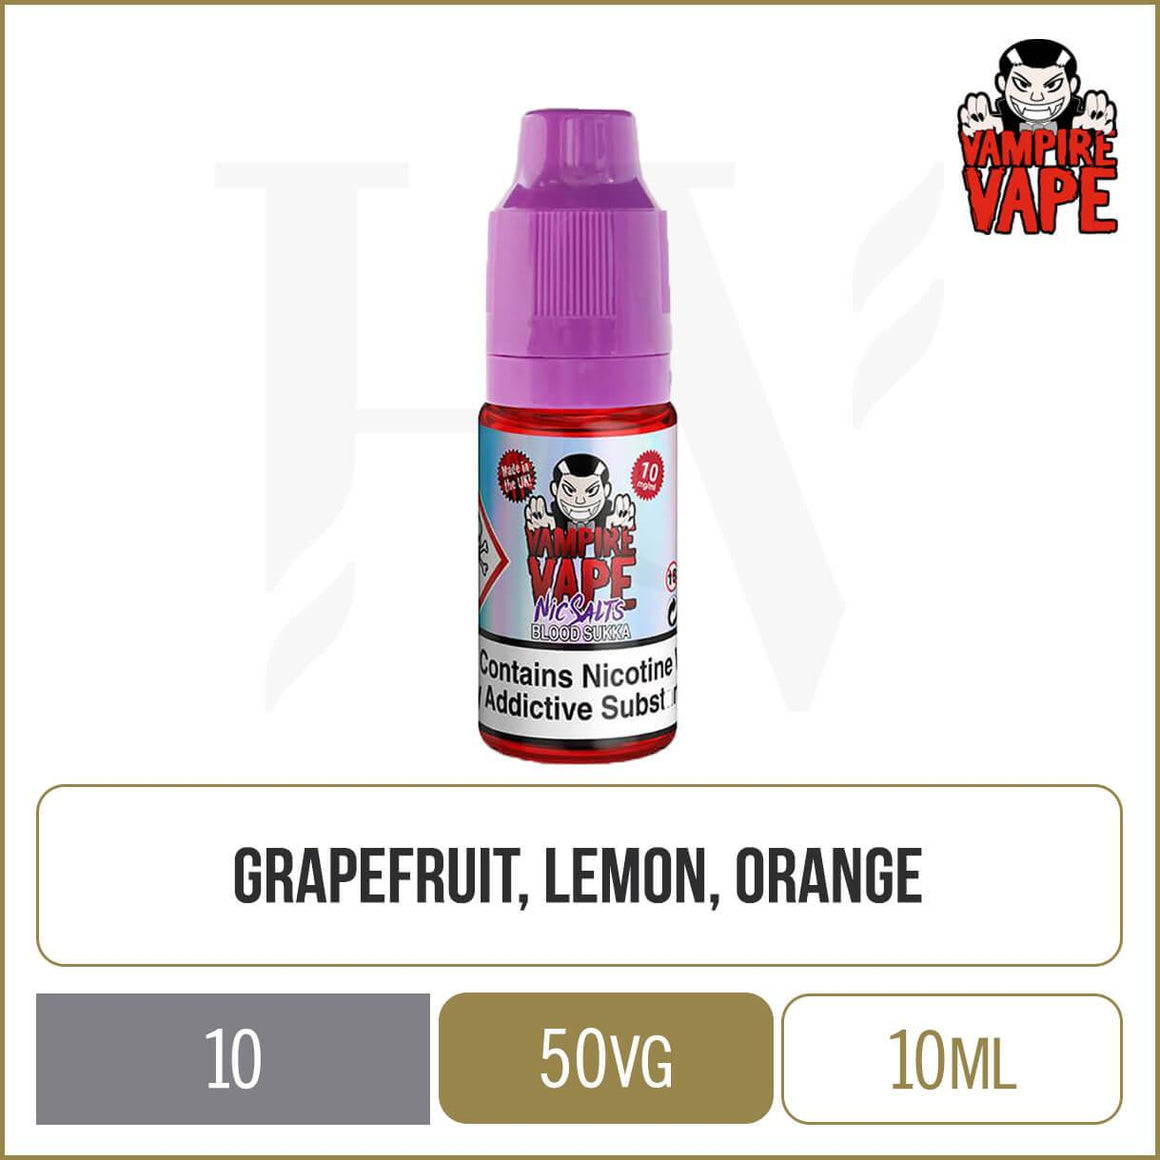 Vampire Vape Nic Salts blood sukka e-liquid 10ml